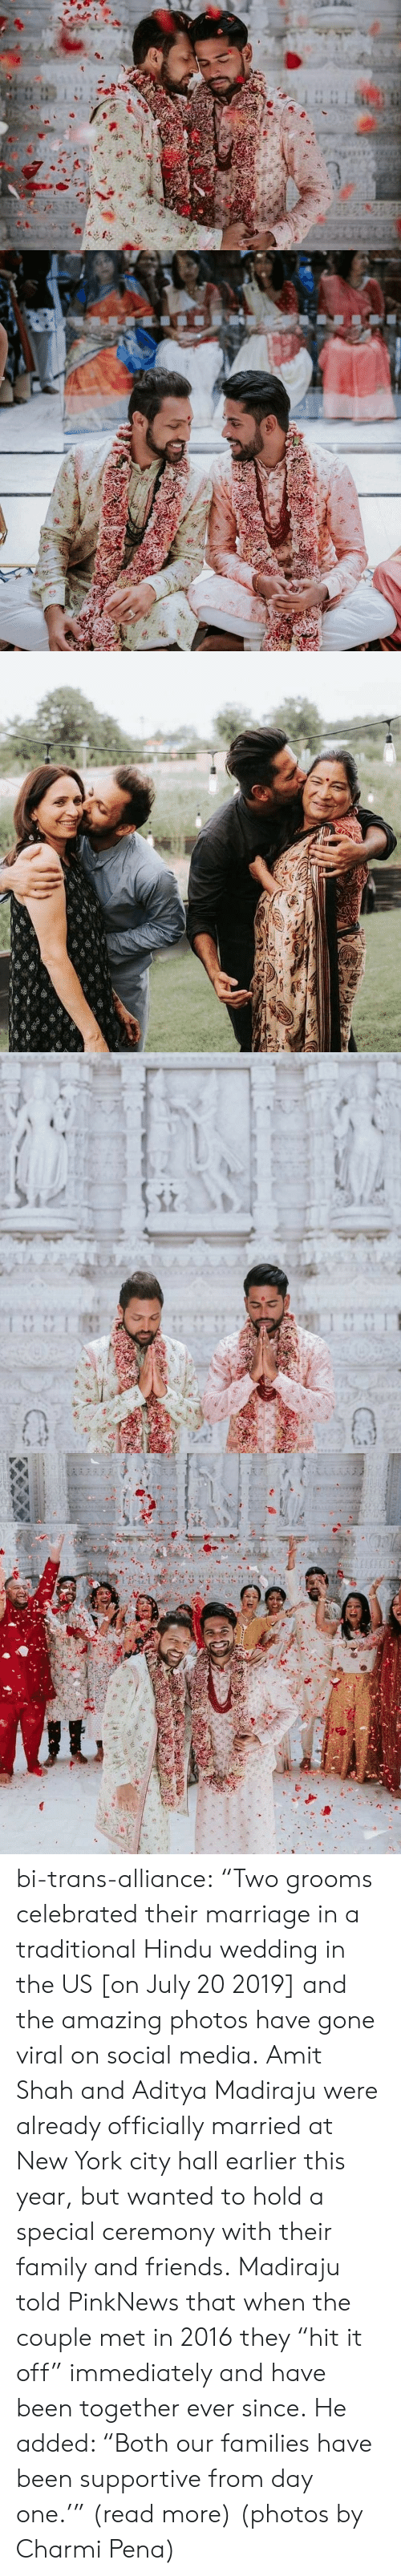 "supportive: TA A  AAAA  1 1 bi-trans-alliance:   ""Two grooms celebrated their marriage in a traditional Hindu wedding in the US [on July 20 2019] and the amazing photos have gone viral on social media.   Amit Shah and Aditya Madiraju were already officially married at New York city hall earlier this year, but wanted to hold a special ceremony with their family and friends. Madiraju told PinkNews that when the couple met in 2016 they ""hit it off"" immediately and have been together ever since. He added: ""Both our families have been supportive from day one.'"" (read more) (photos by Charmi Pena)"